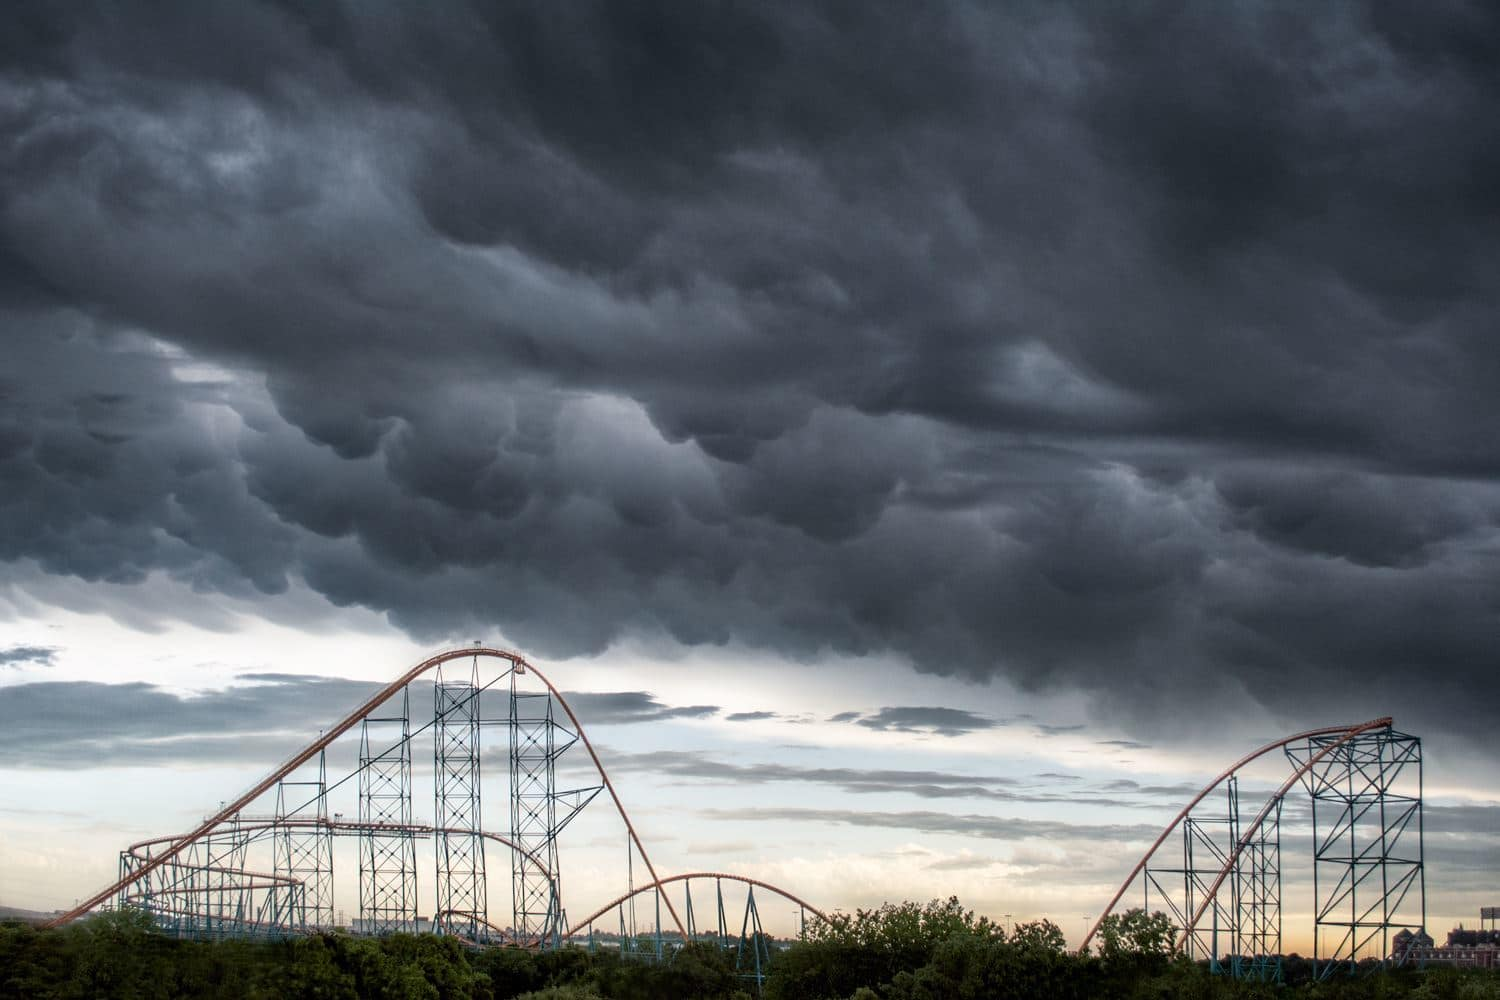 Mammatus clouds hanging out over The Titan at Six Flags Over Texas last Sunday. This rollercoaster required 2.8 million pounds of steel to manufacture.